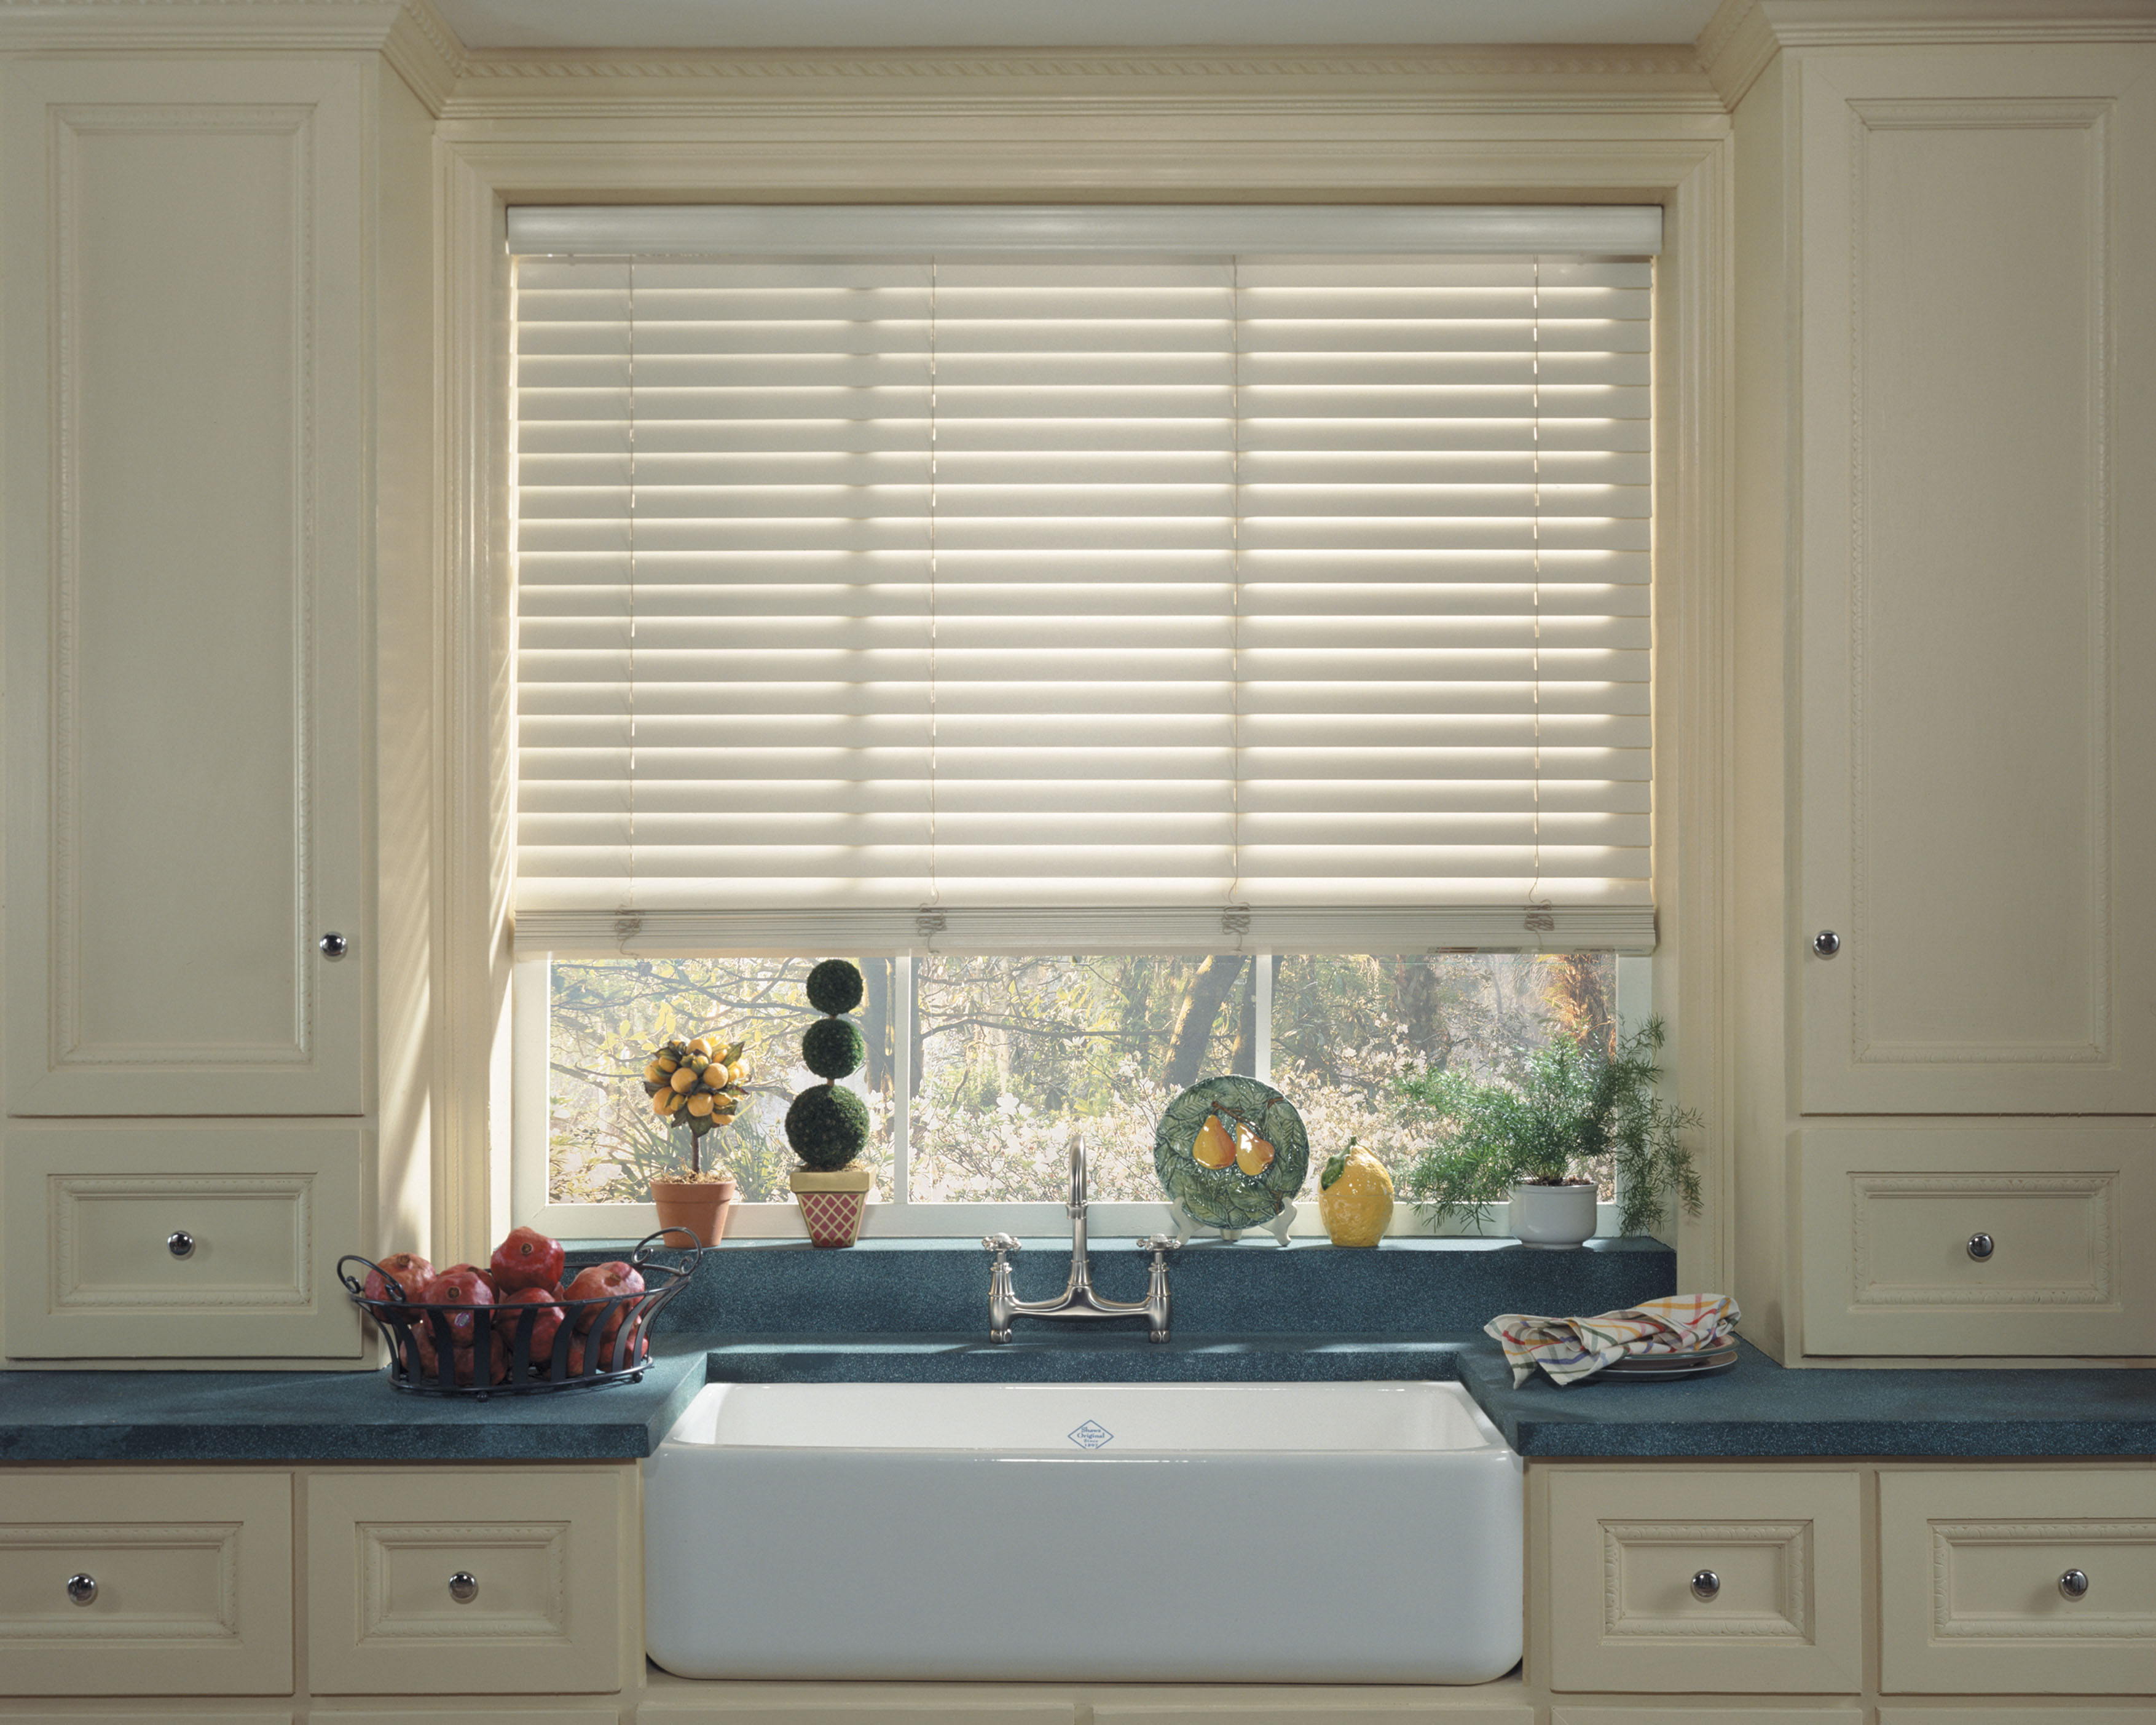 kitchen window shades vintage step stool chair lines in design  interior designers talk composition with